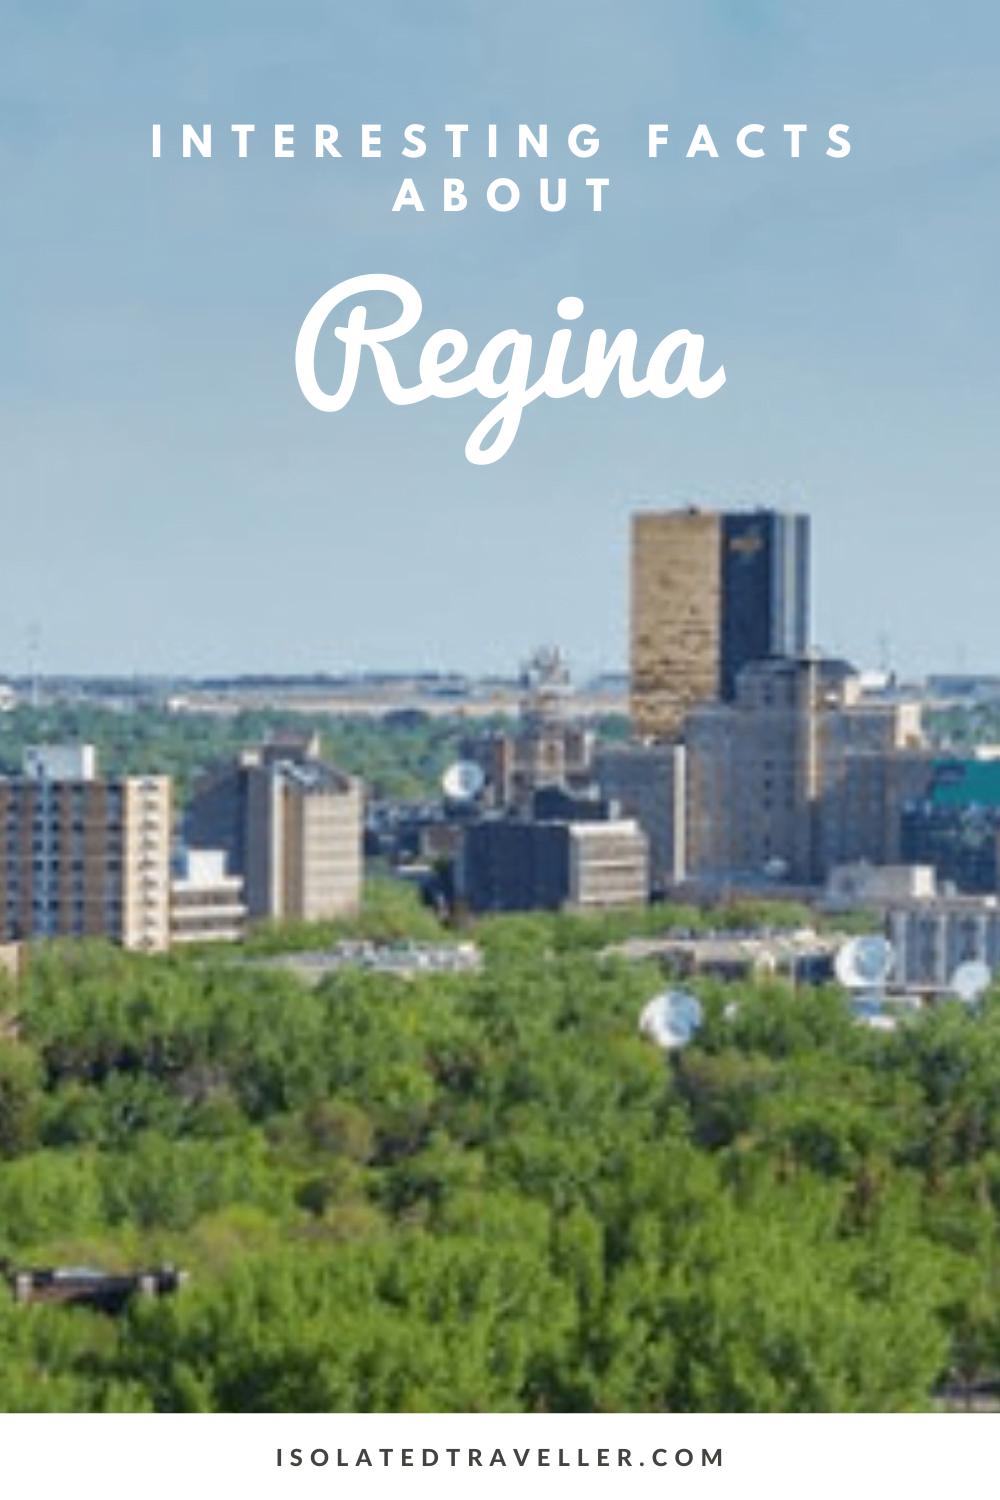 Facts About Regina